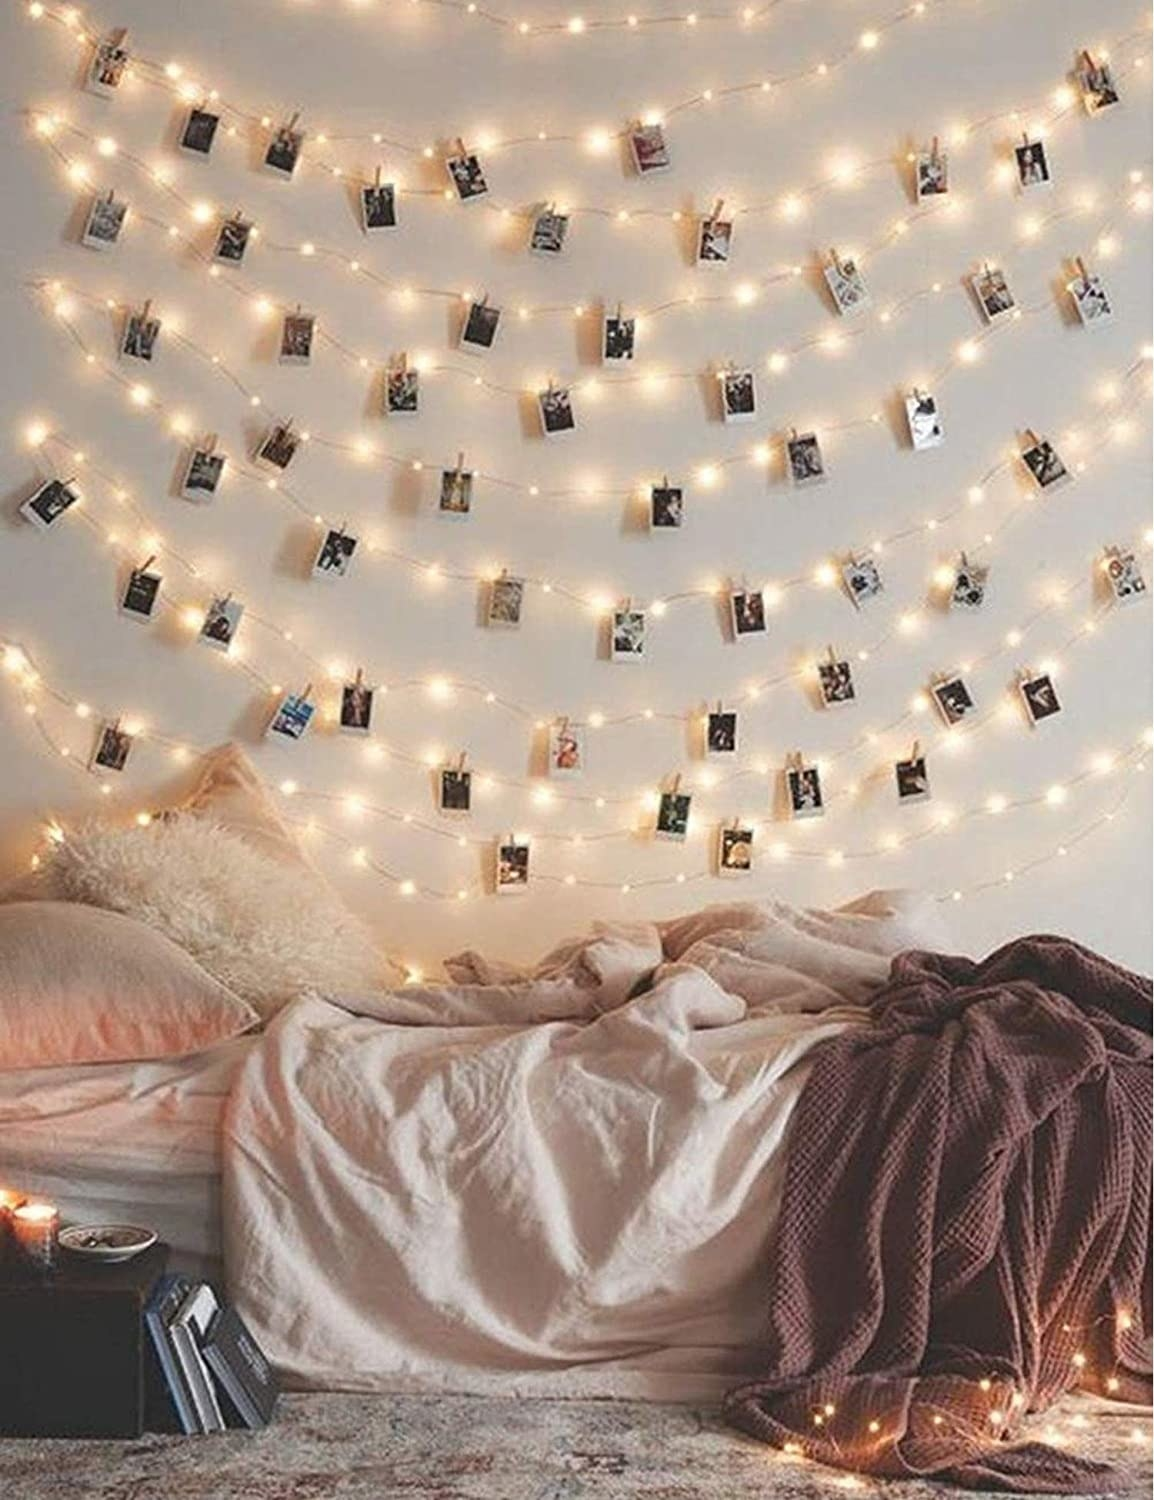 rows of Photo Clip String Lights hang above a bed